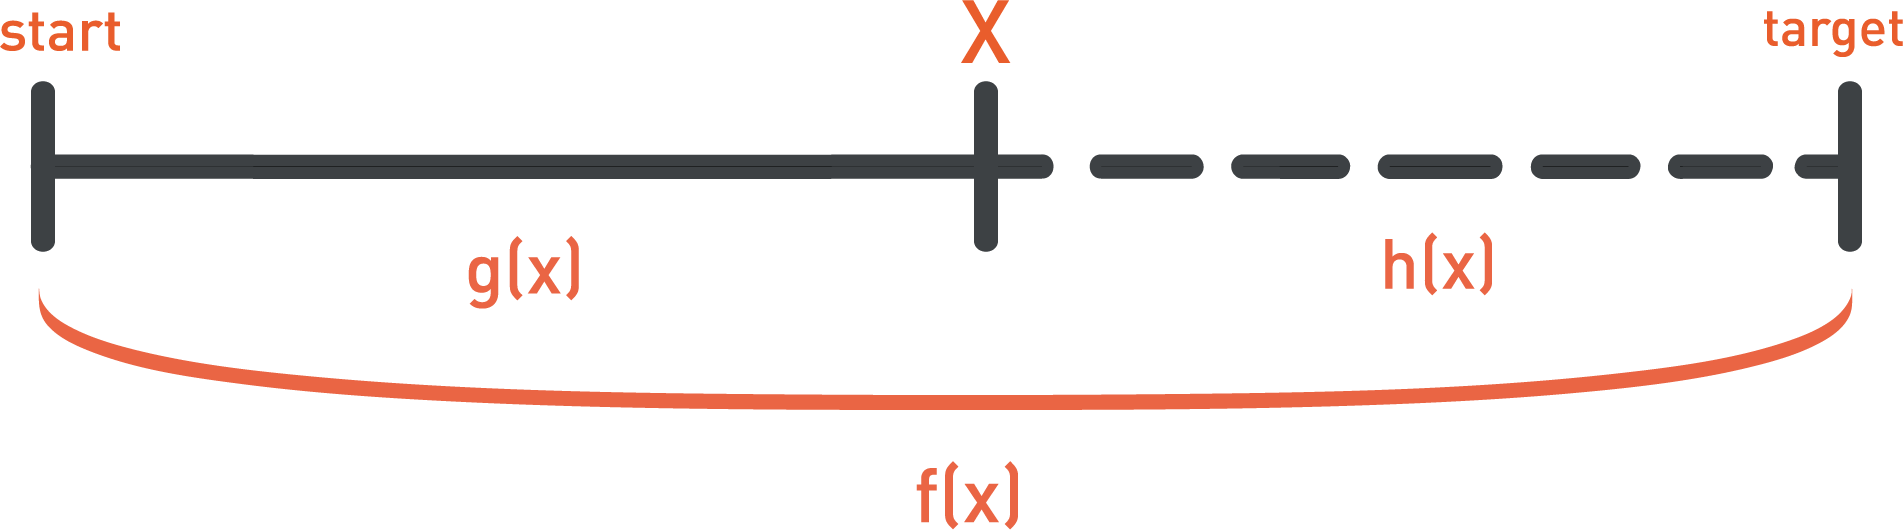 a star cost function